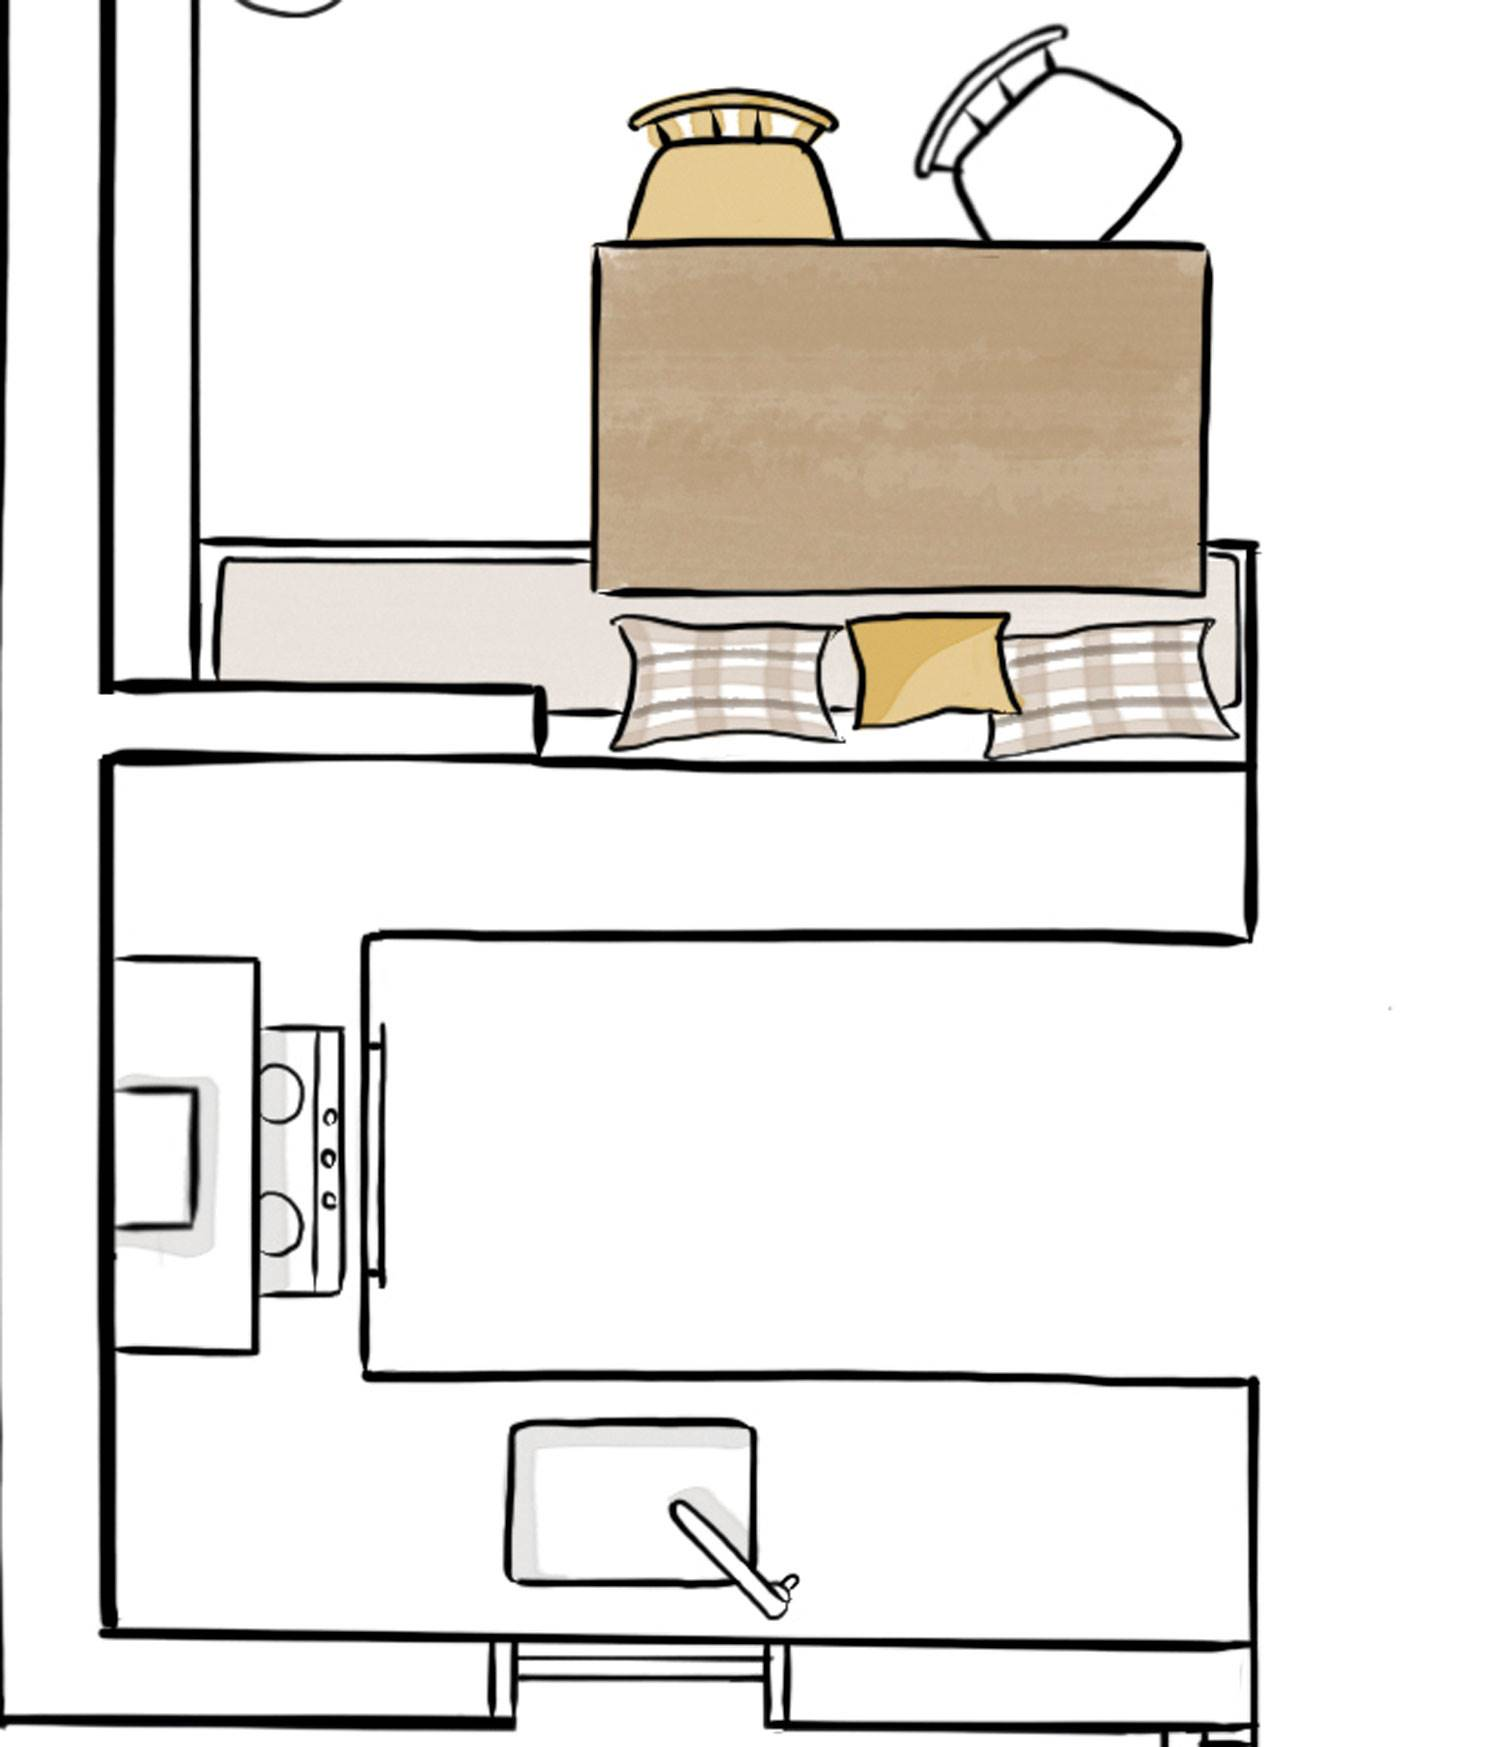 Kitchen plan open to the dining room of less than 6 m2 00480699p.  The distribution is in 'U' with attached office